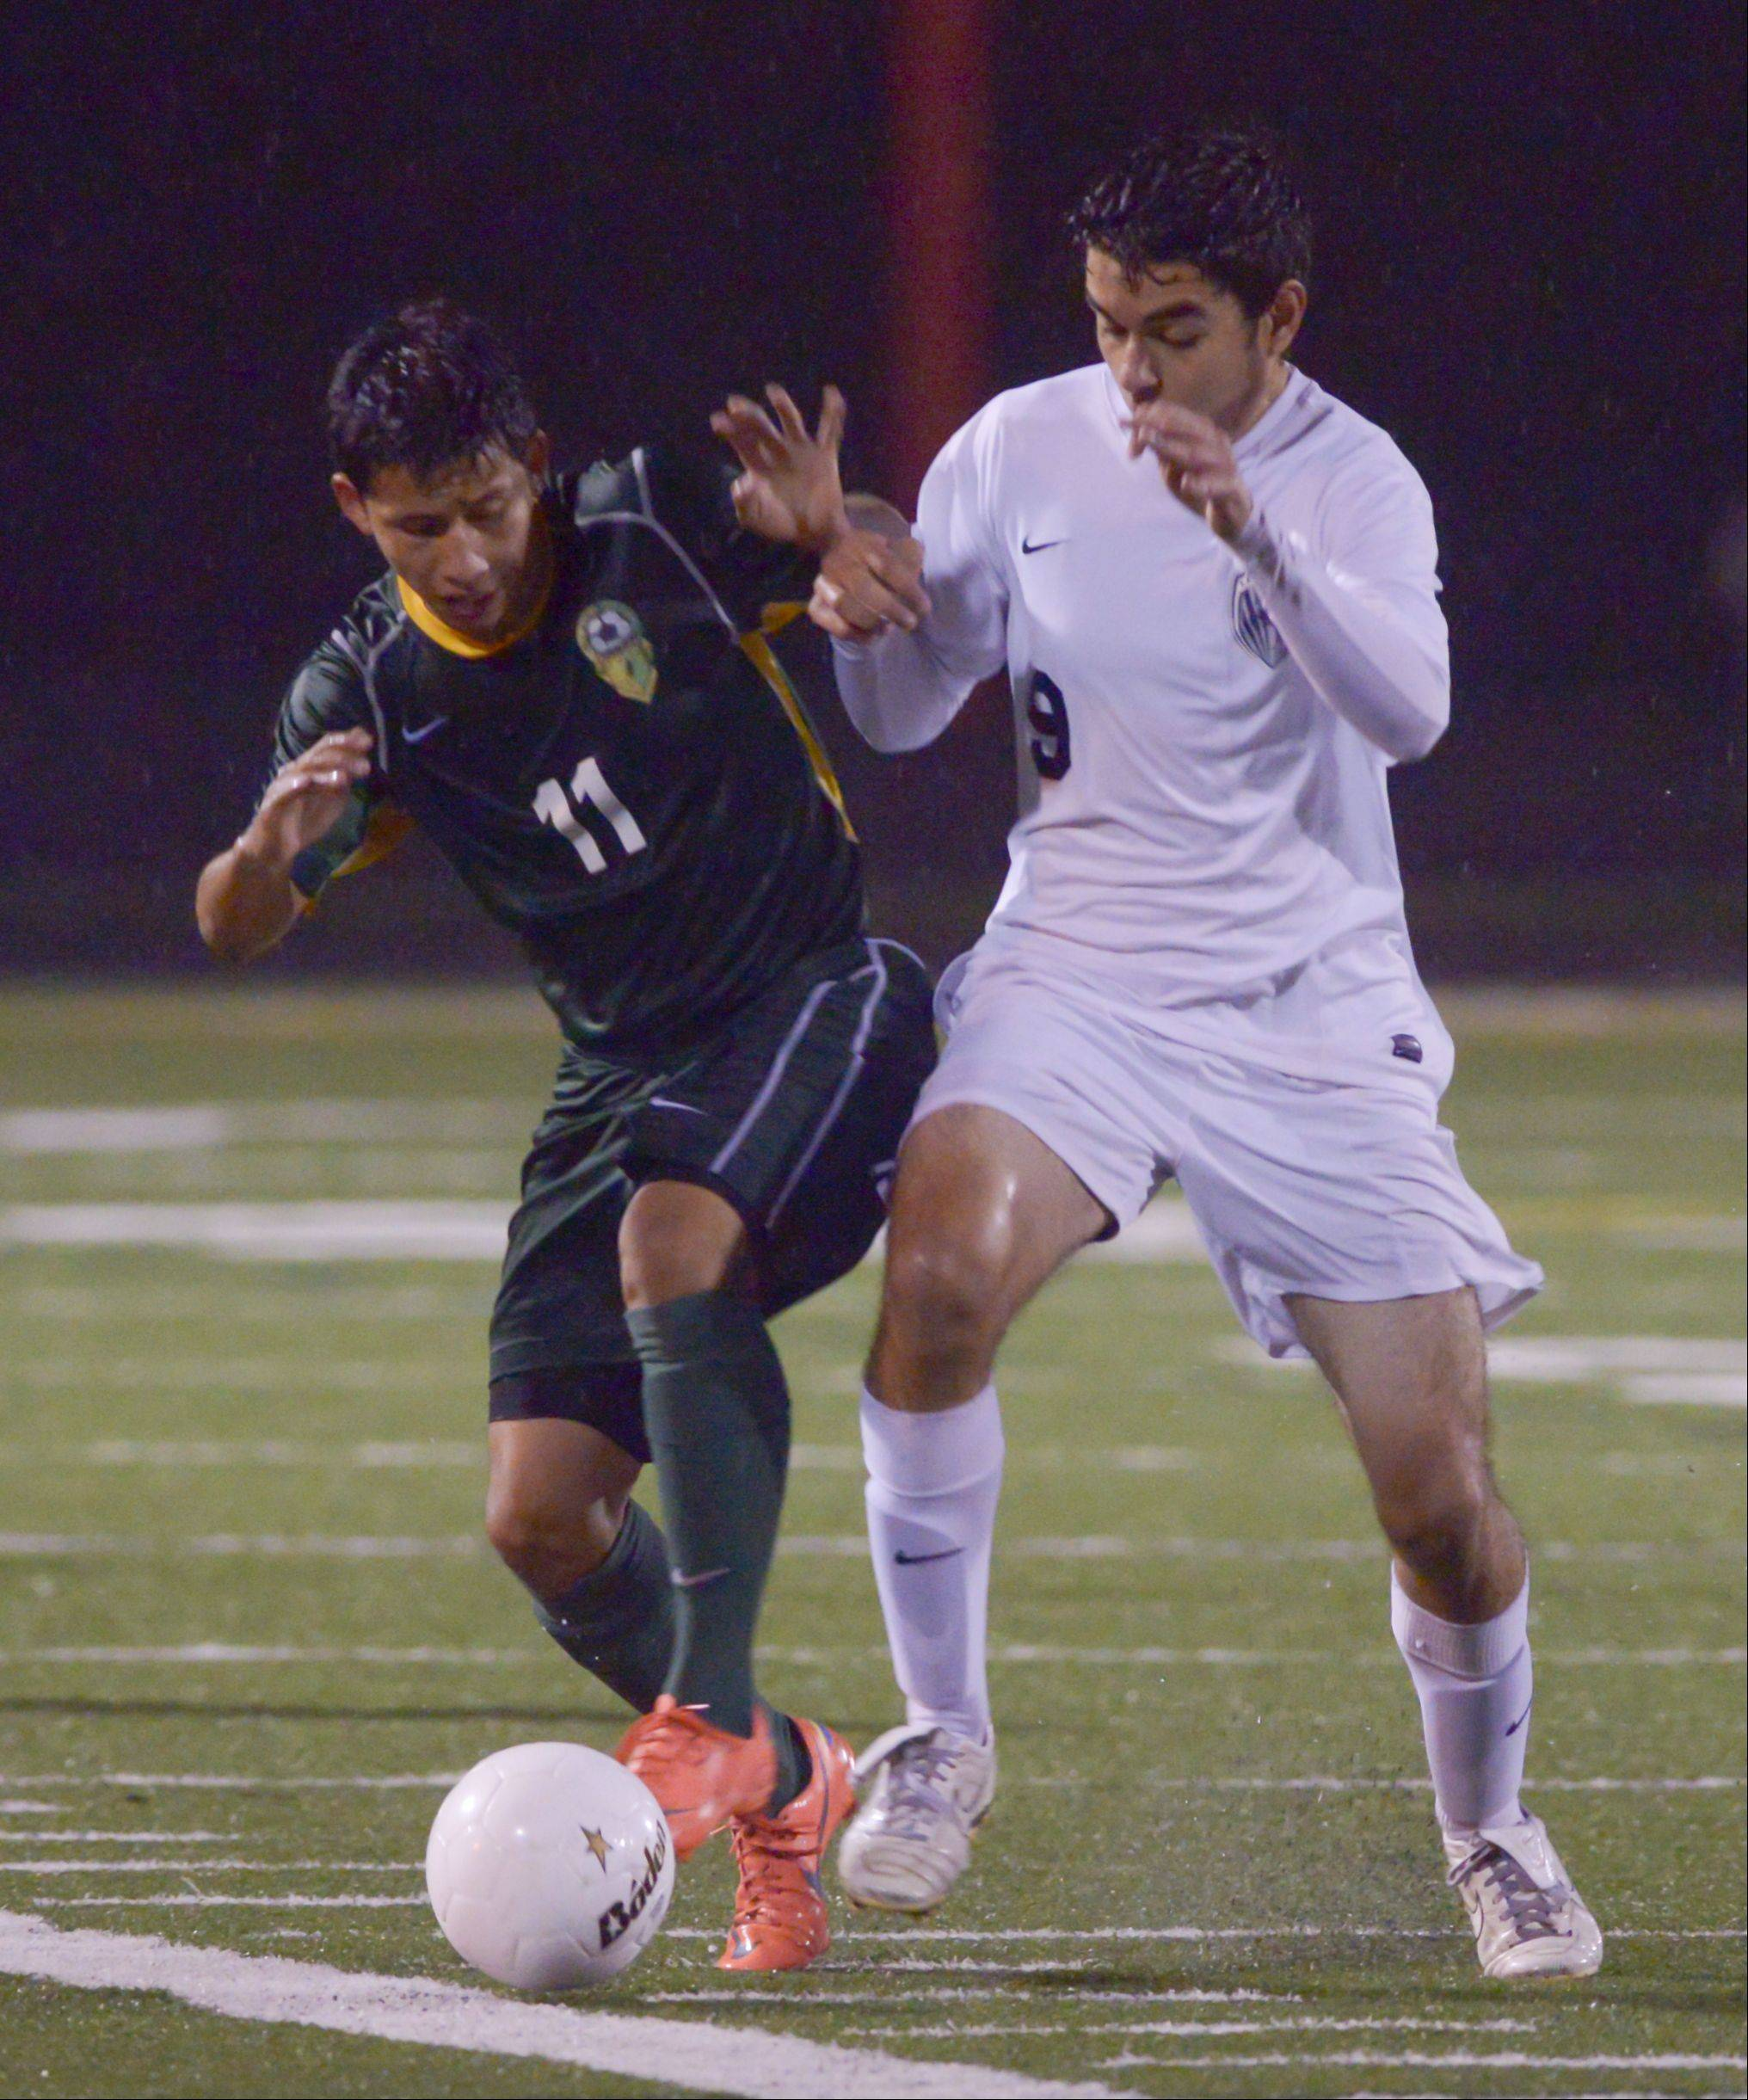 Carlos Miranda of Elk Grove and Carlos Torres of Lake Park battle for control of the ball during in the Class 3A Schaumburg sectional semifinals Wednesday.